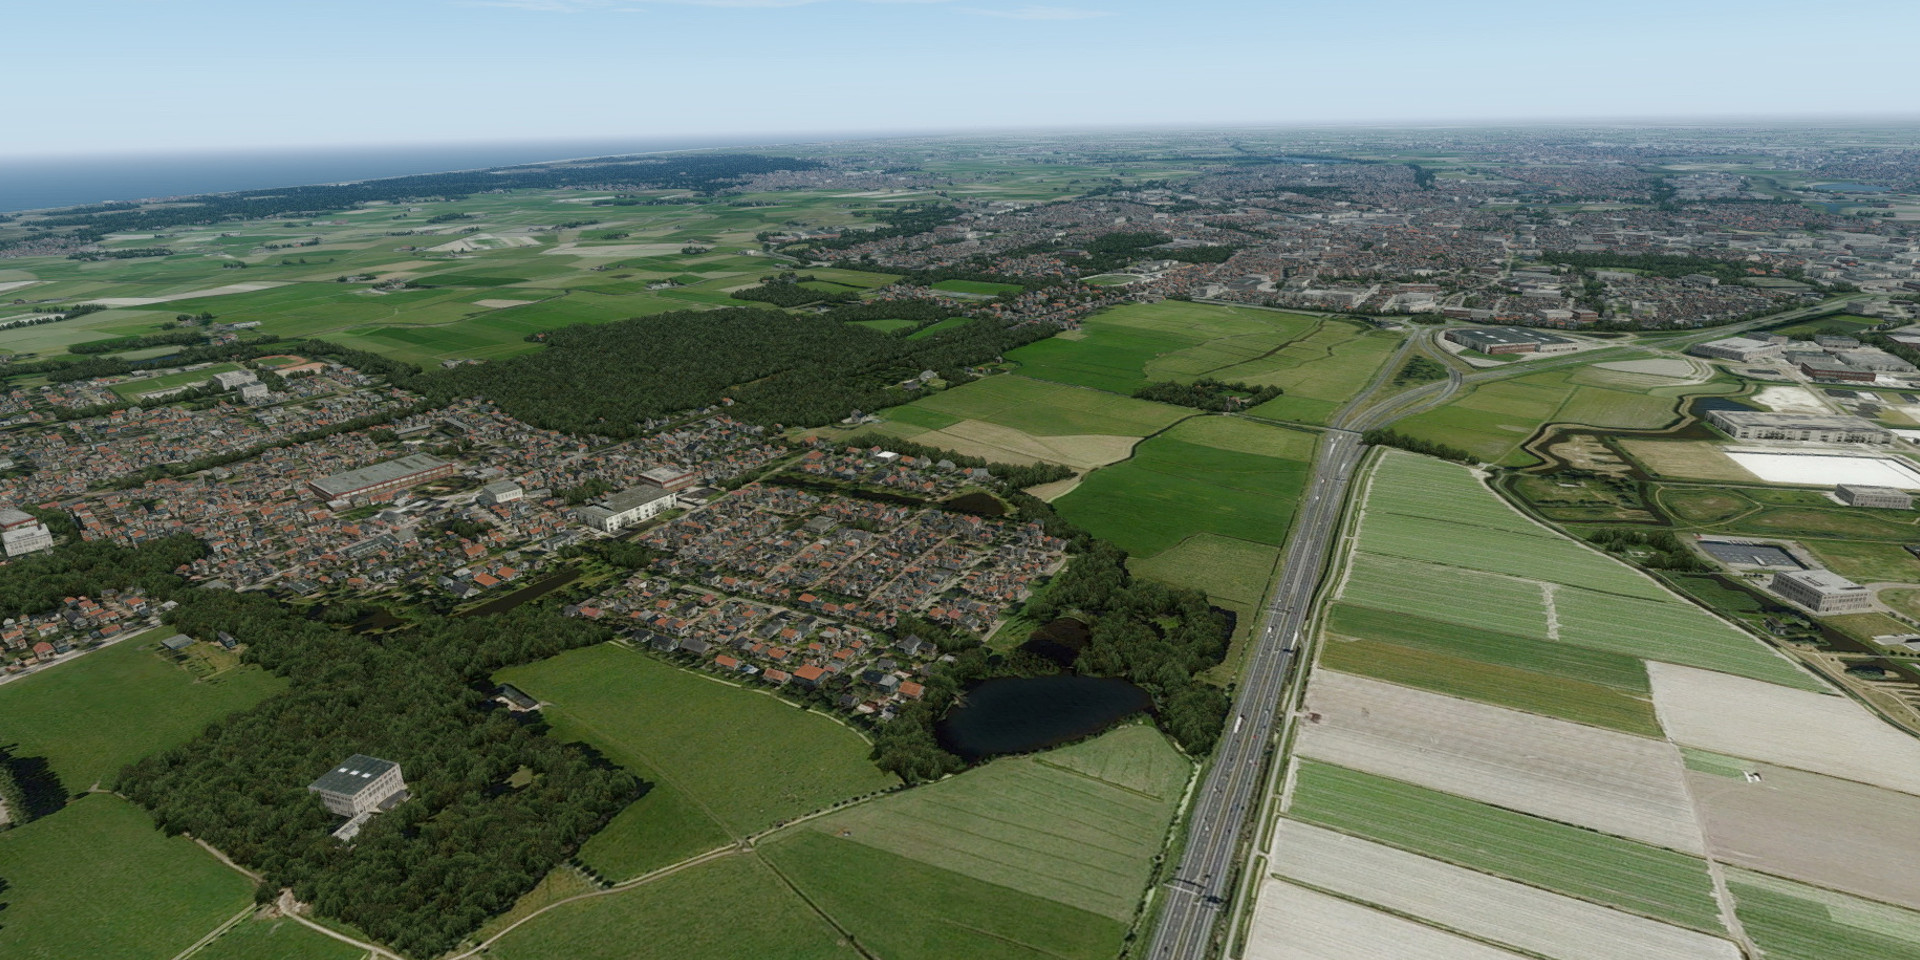 Orbx ftx EU Netherlands Photoreal Previews